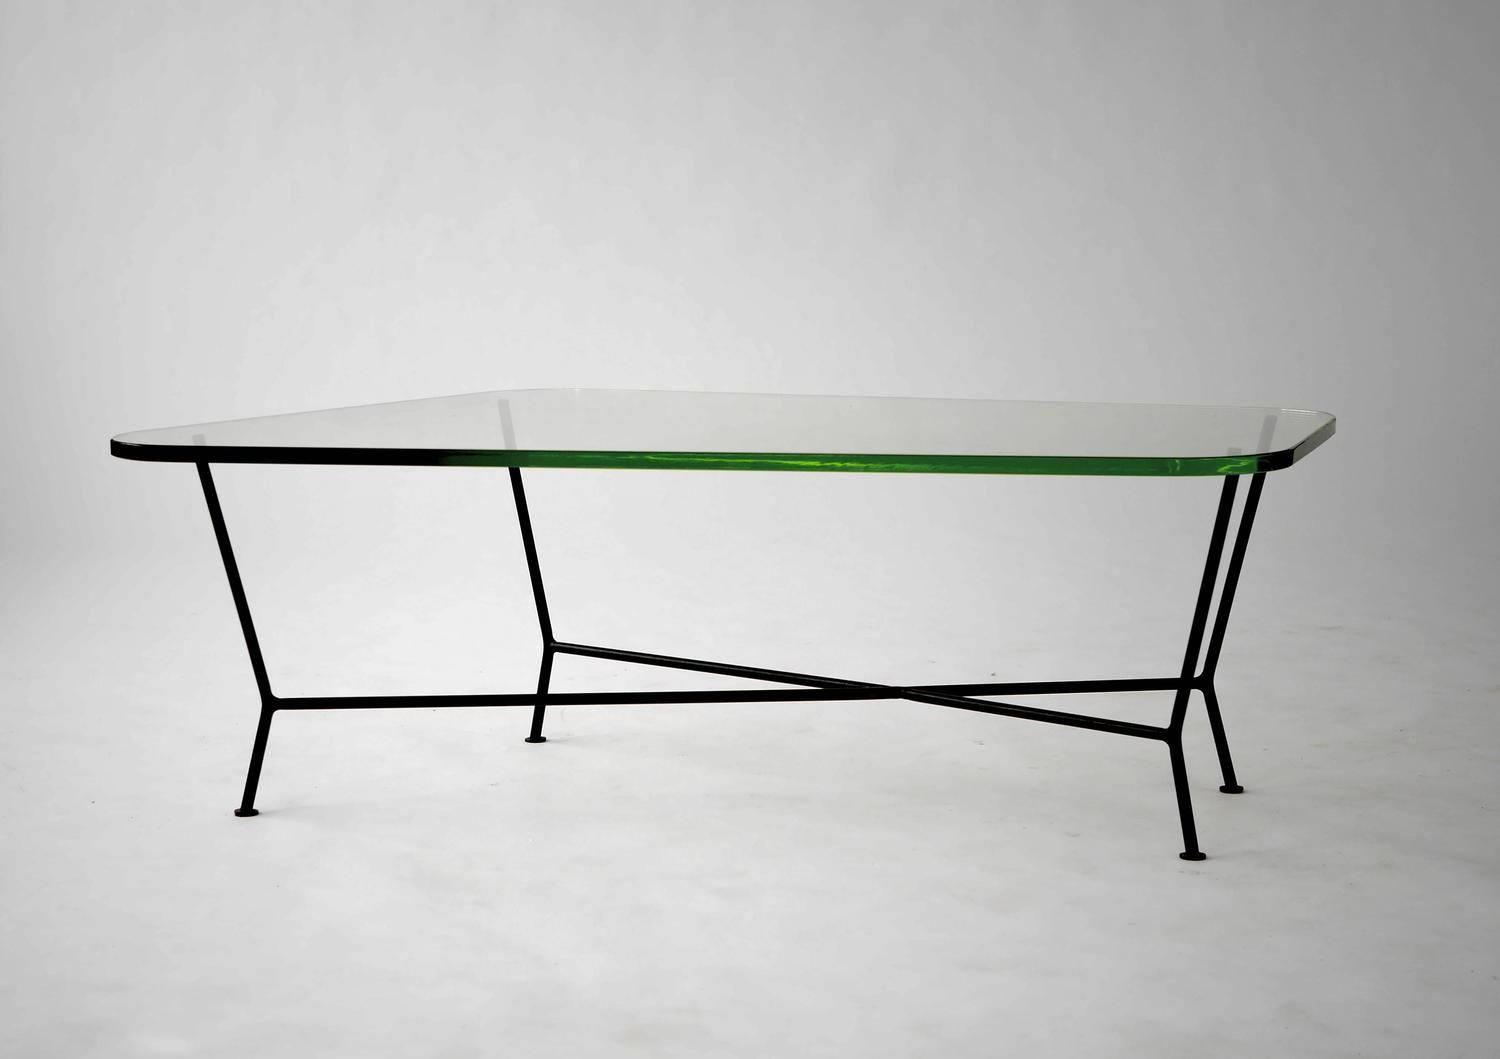 Unique Green Glass And Wrought Iron Coffee Table For Sale